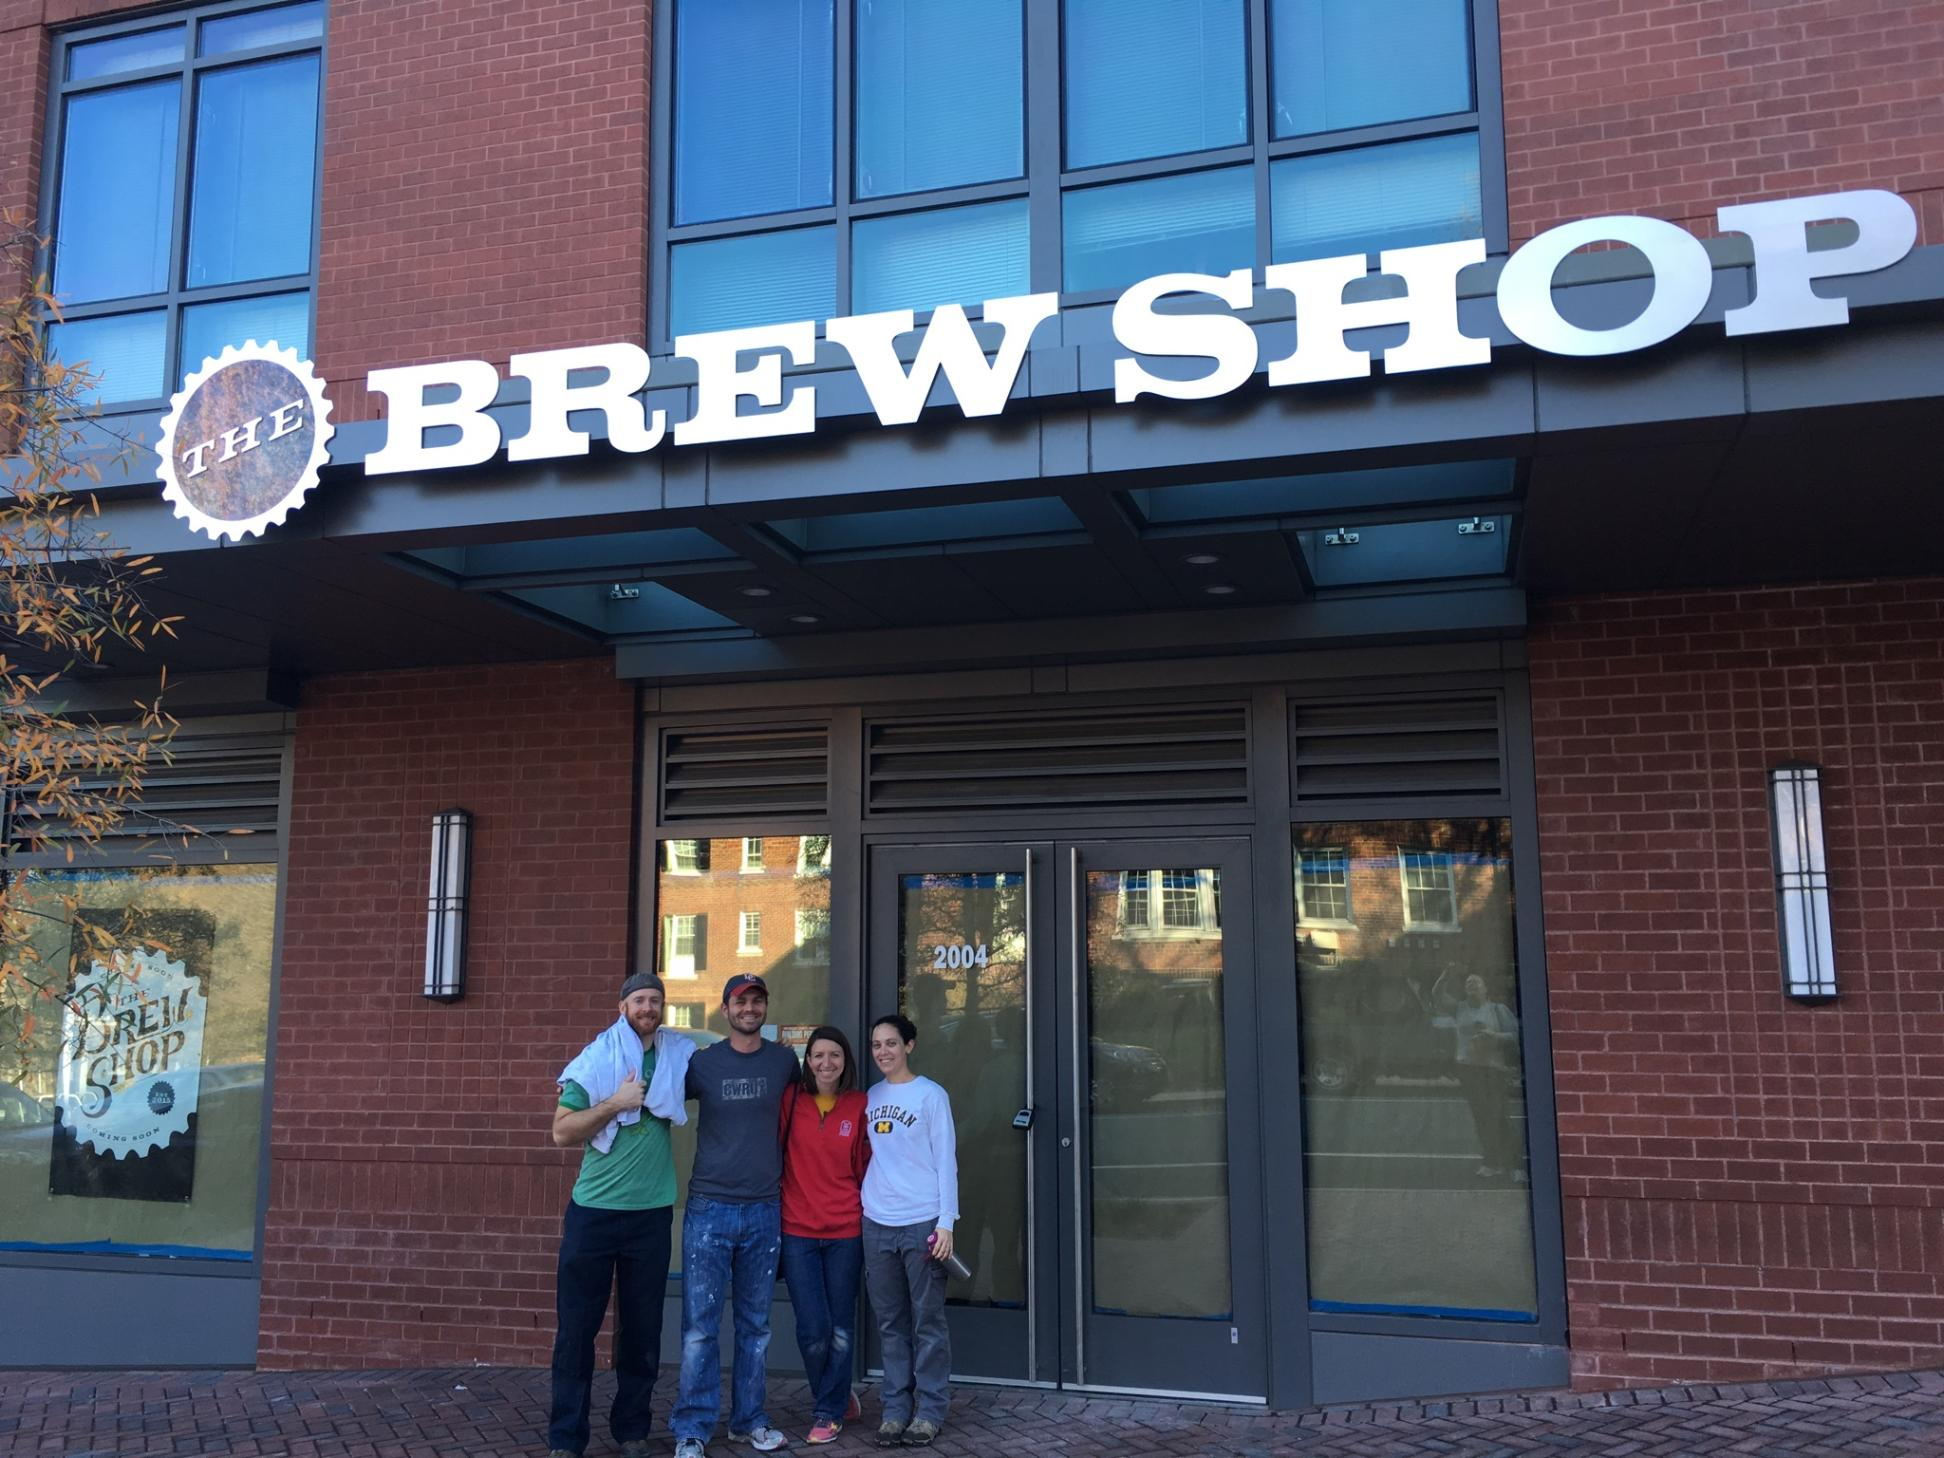 Us with The Brew Husbands after a hard day's work, under our exterior sign